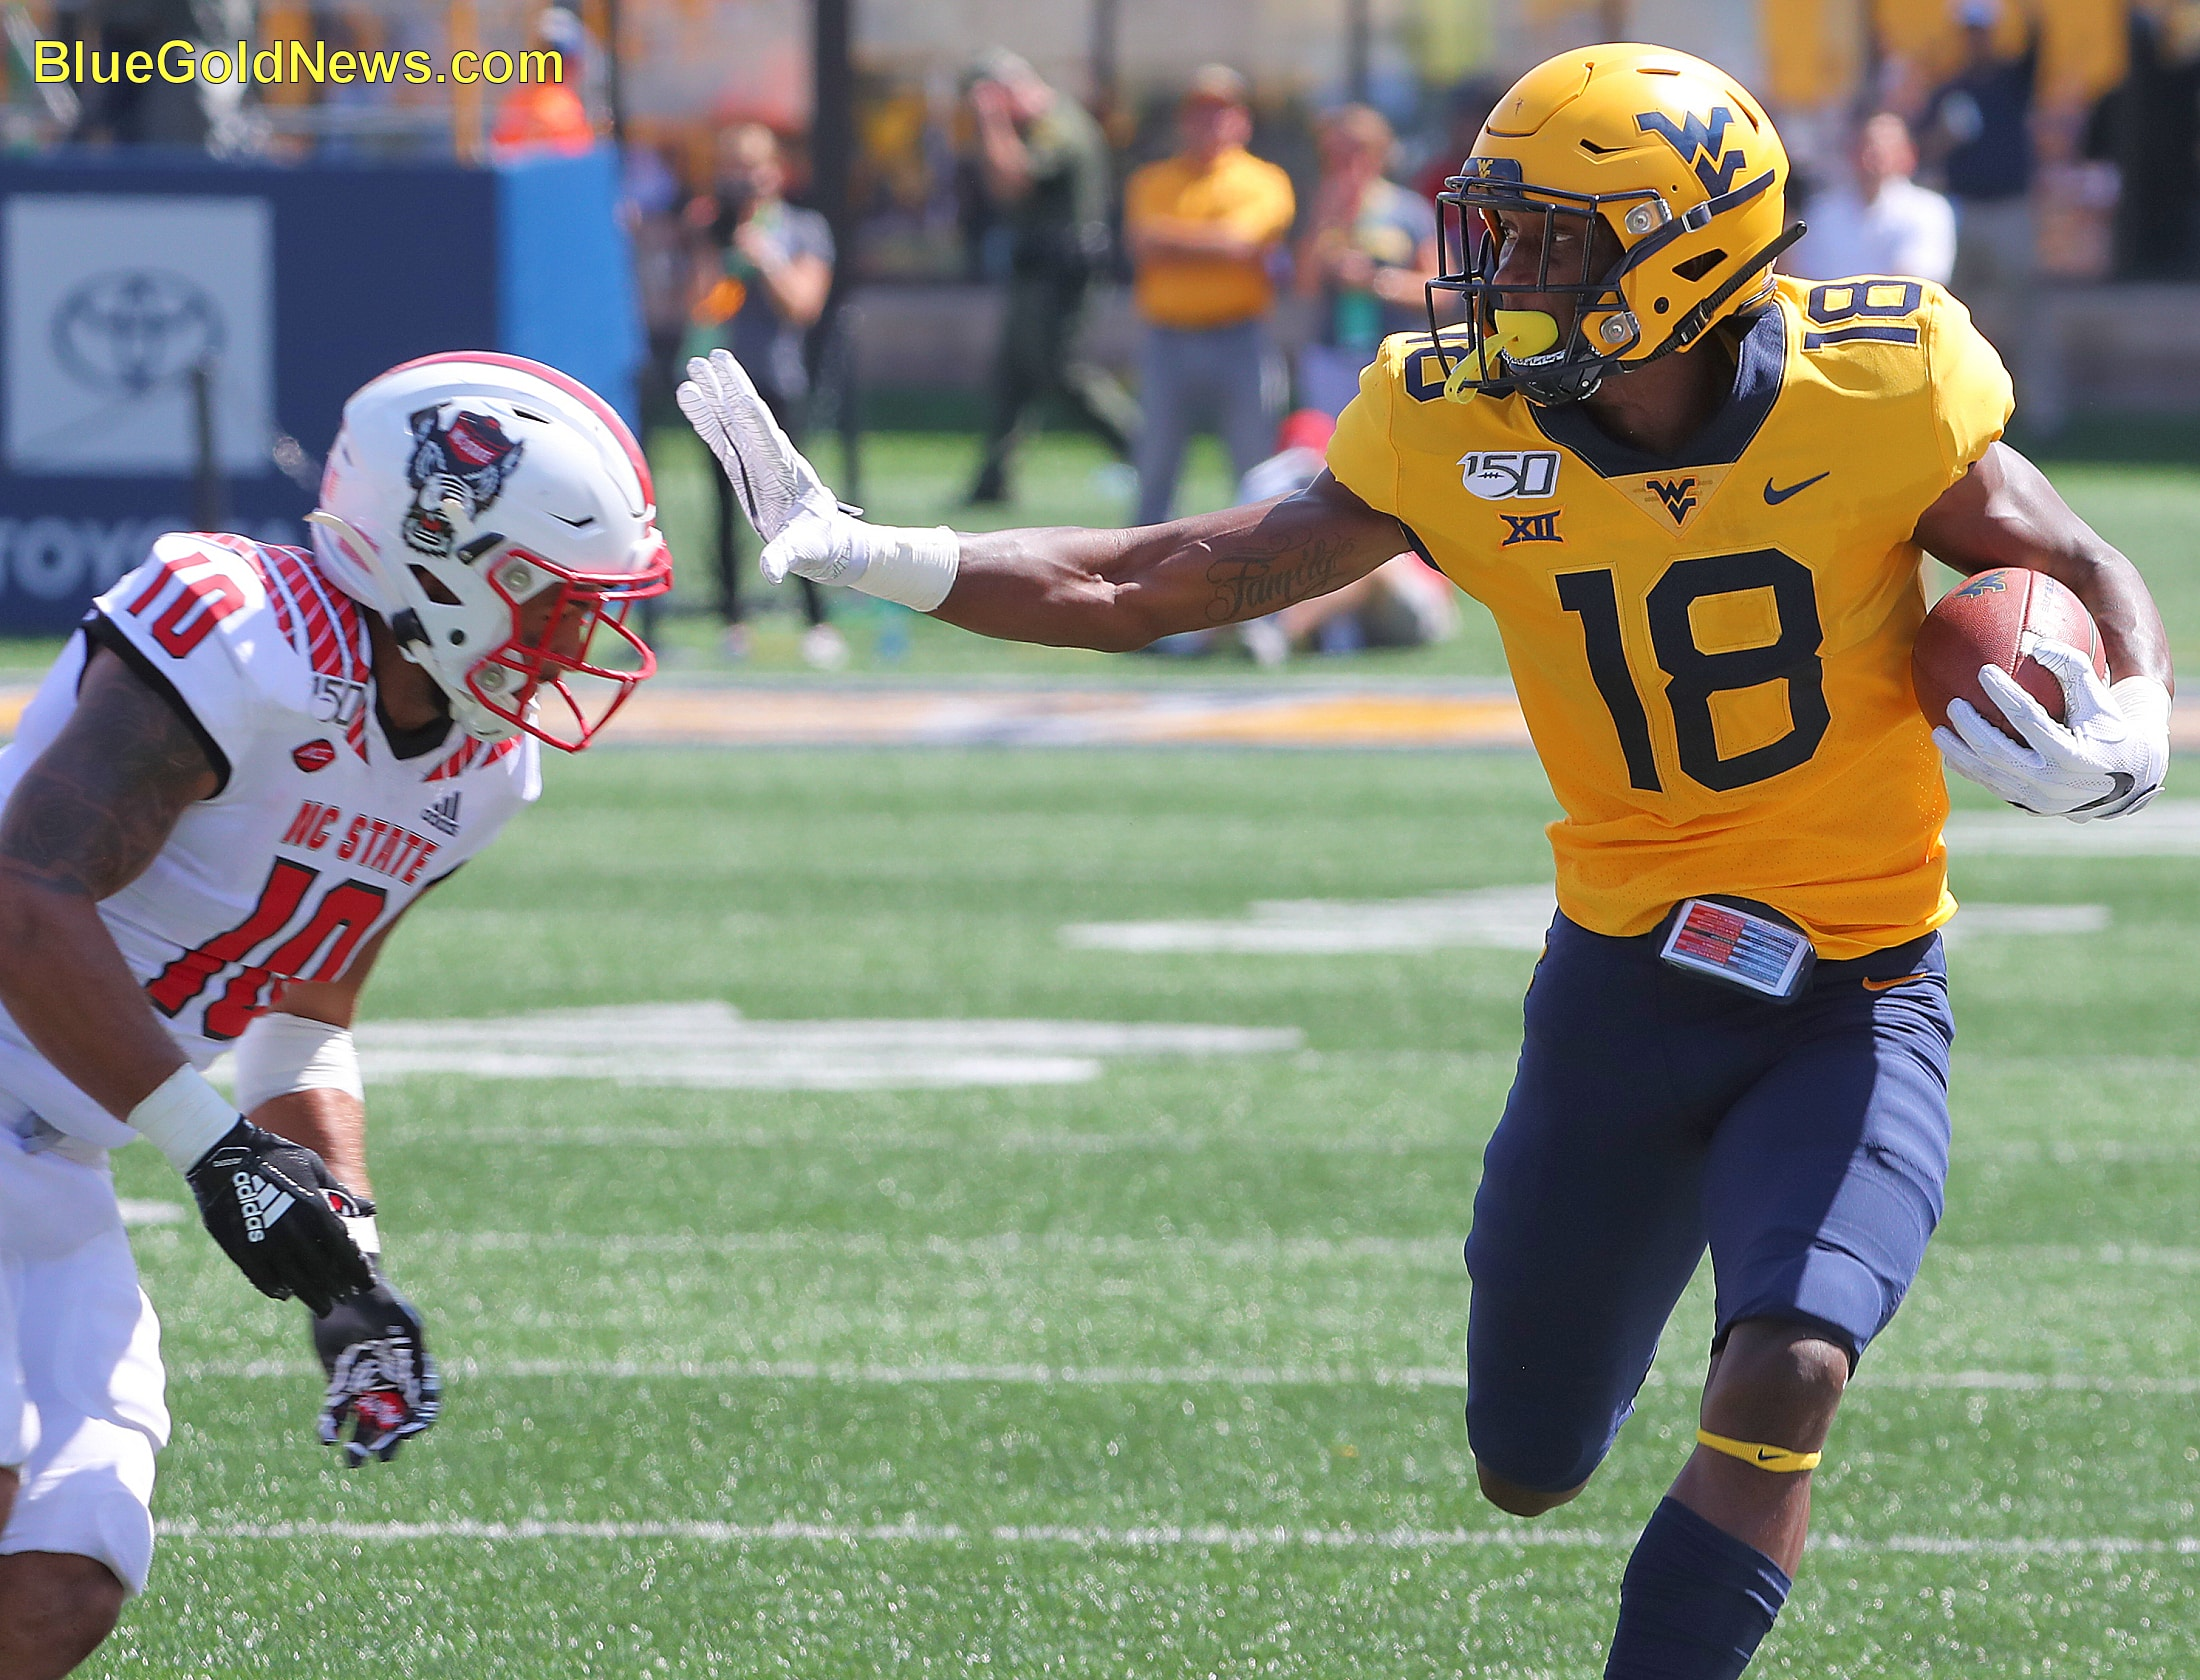 West Virginia wide receiver Sean Ryan (18) applies a stiff-arm to N.C. State's Tanner Hingle